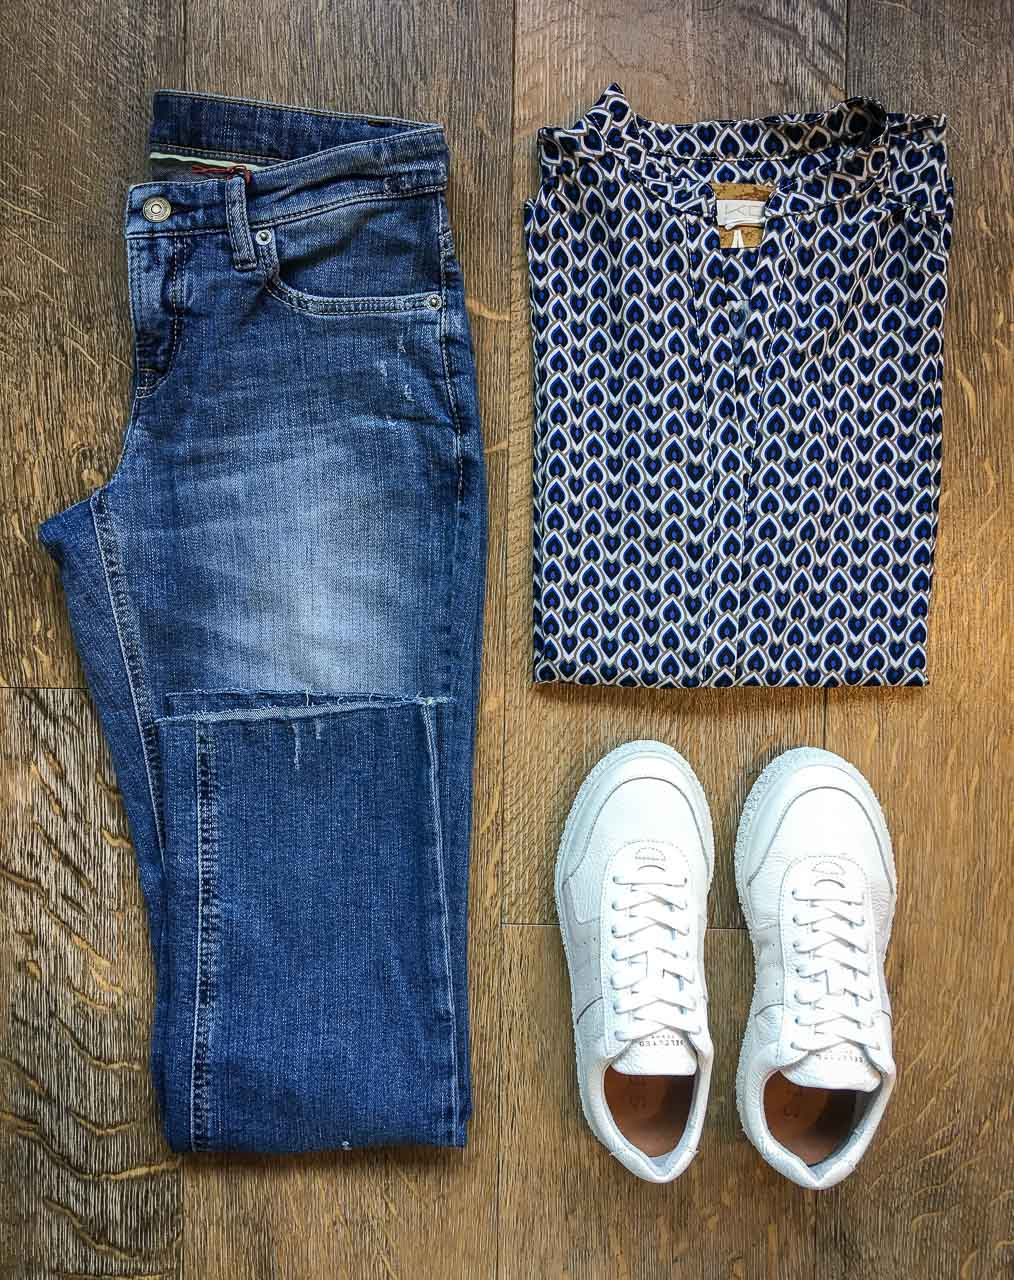 Outfit von Cambio, KD12 und Selected Femme